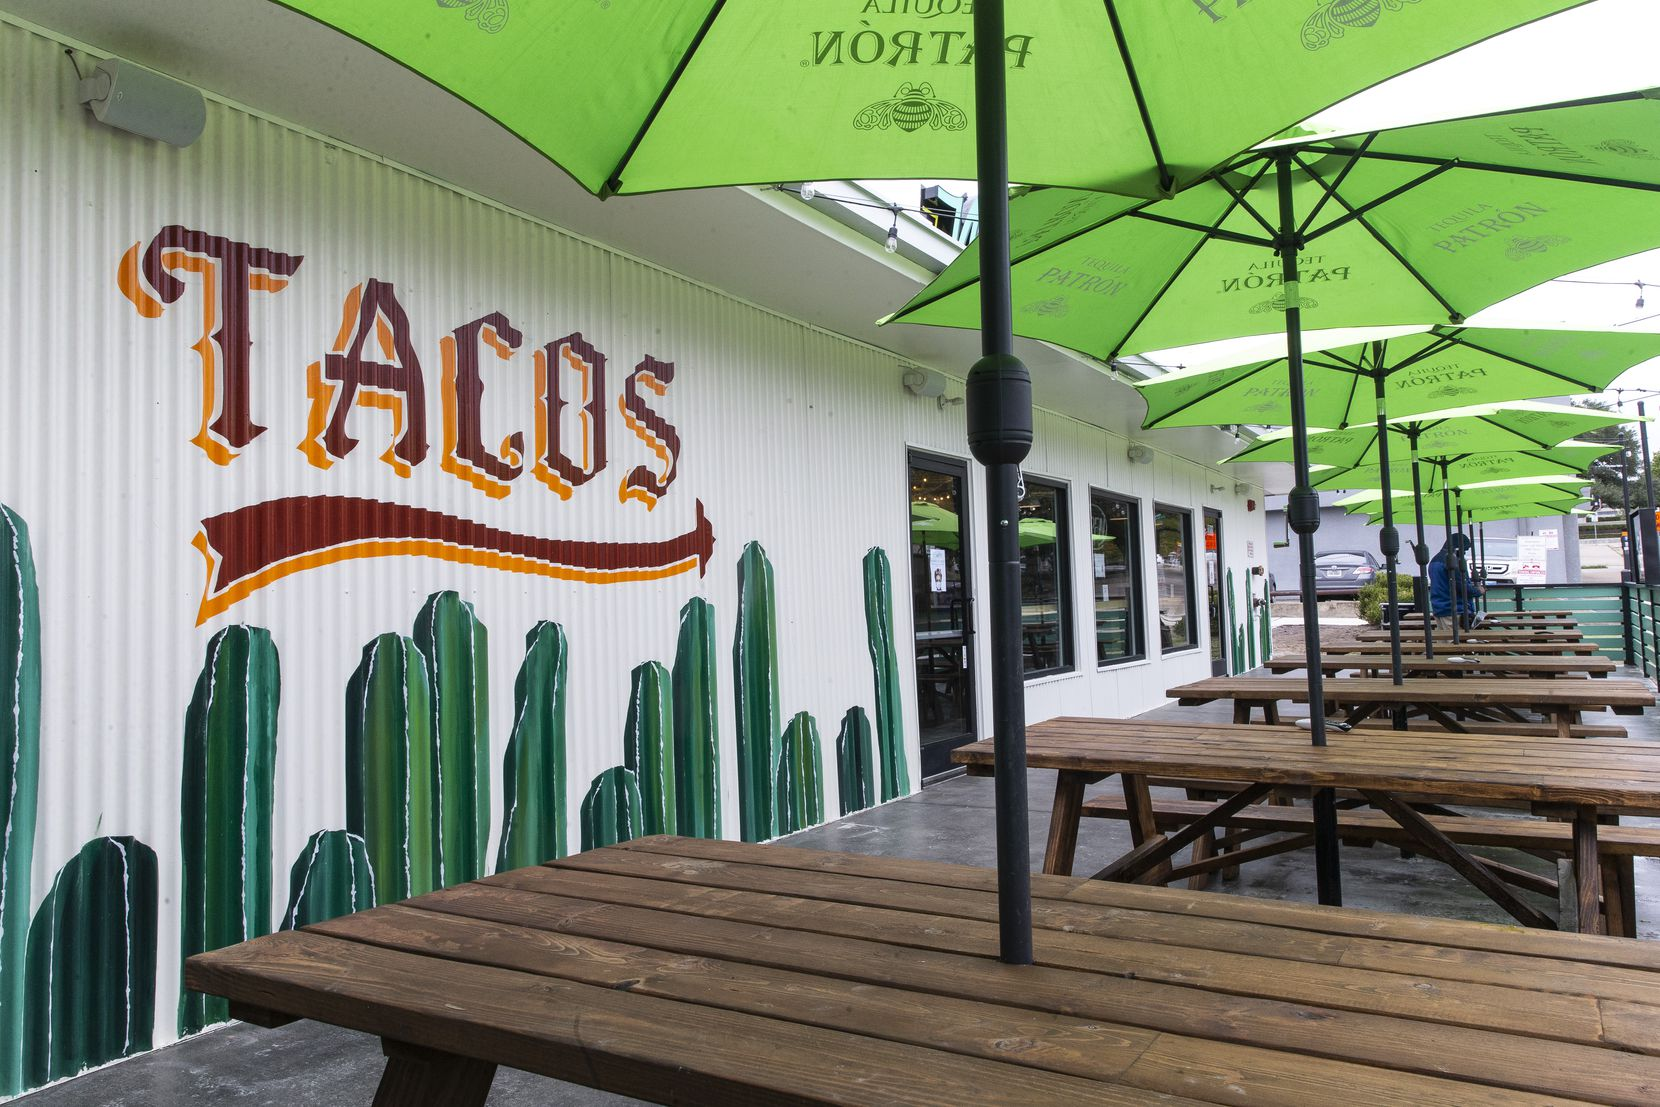 Maestro Tacos — a new tacos and tequila bar — located in Fort Worth